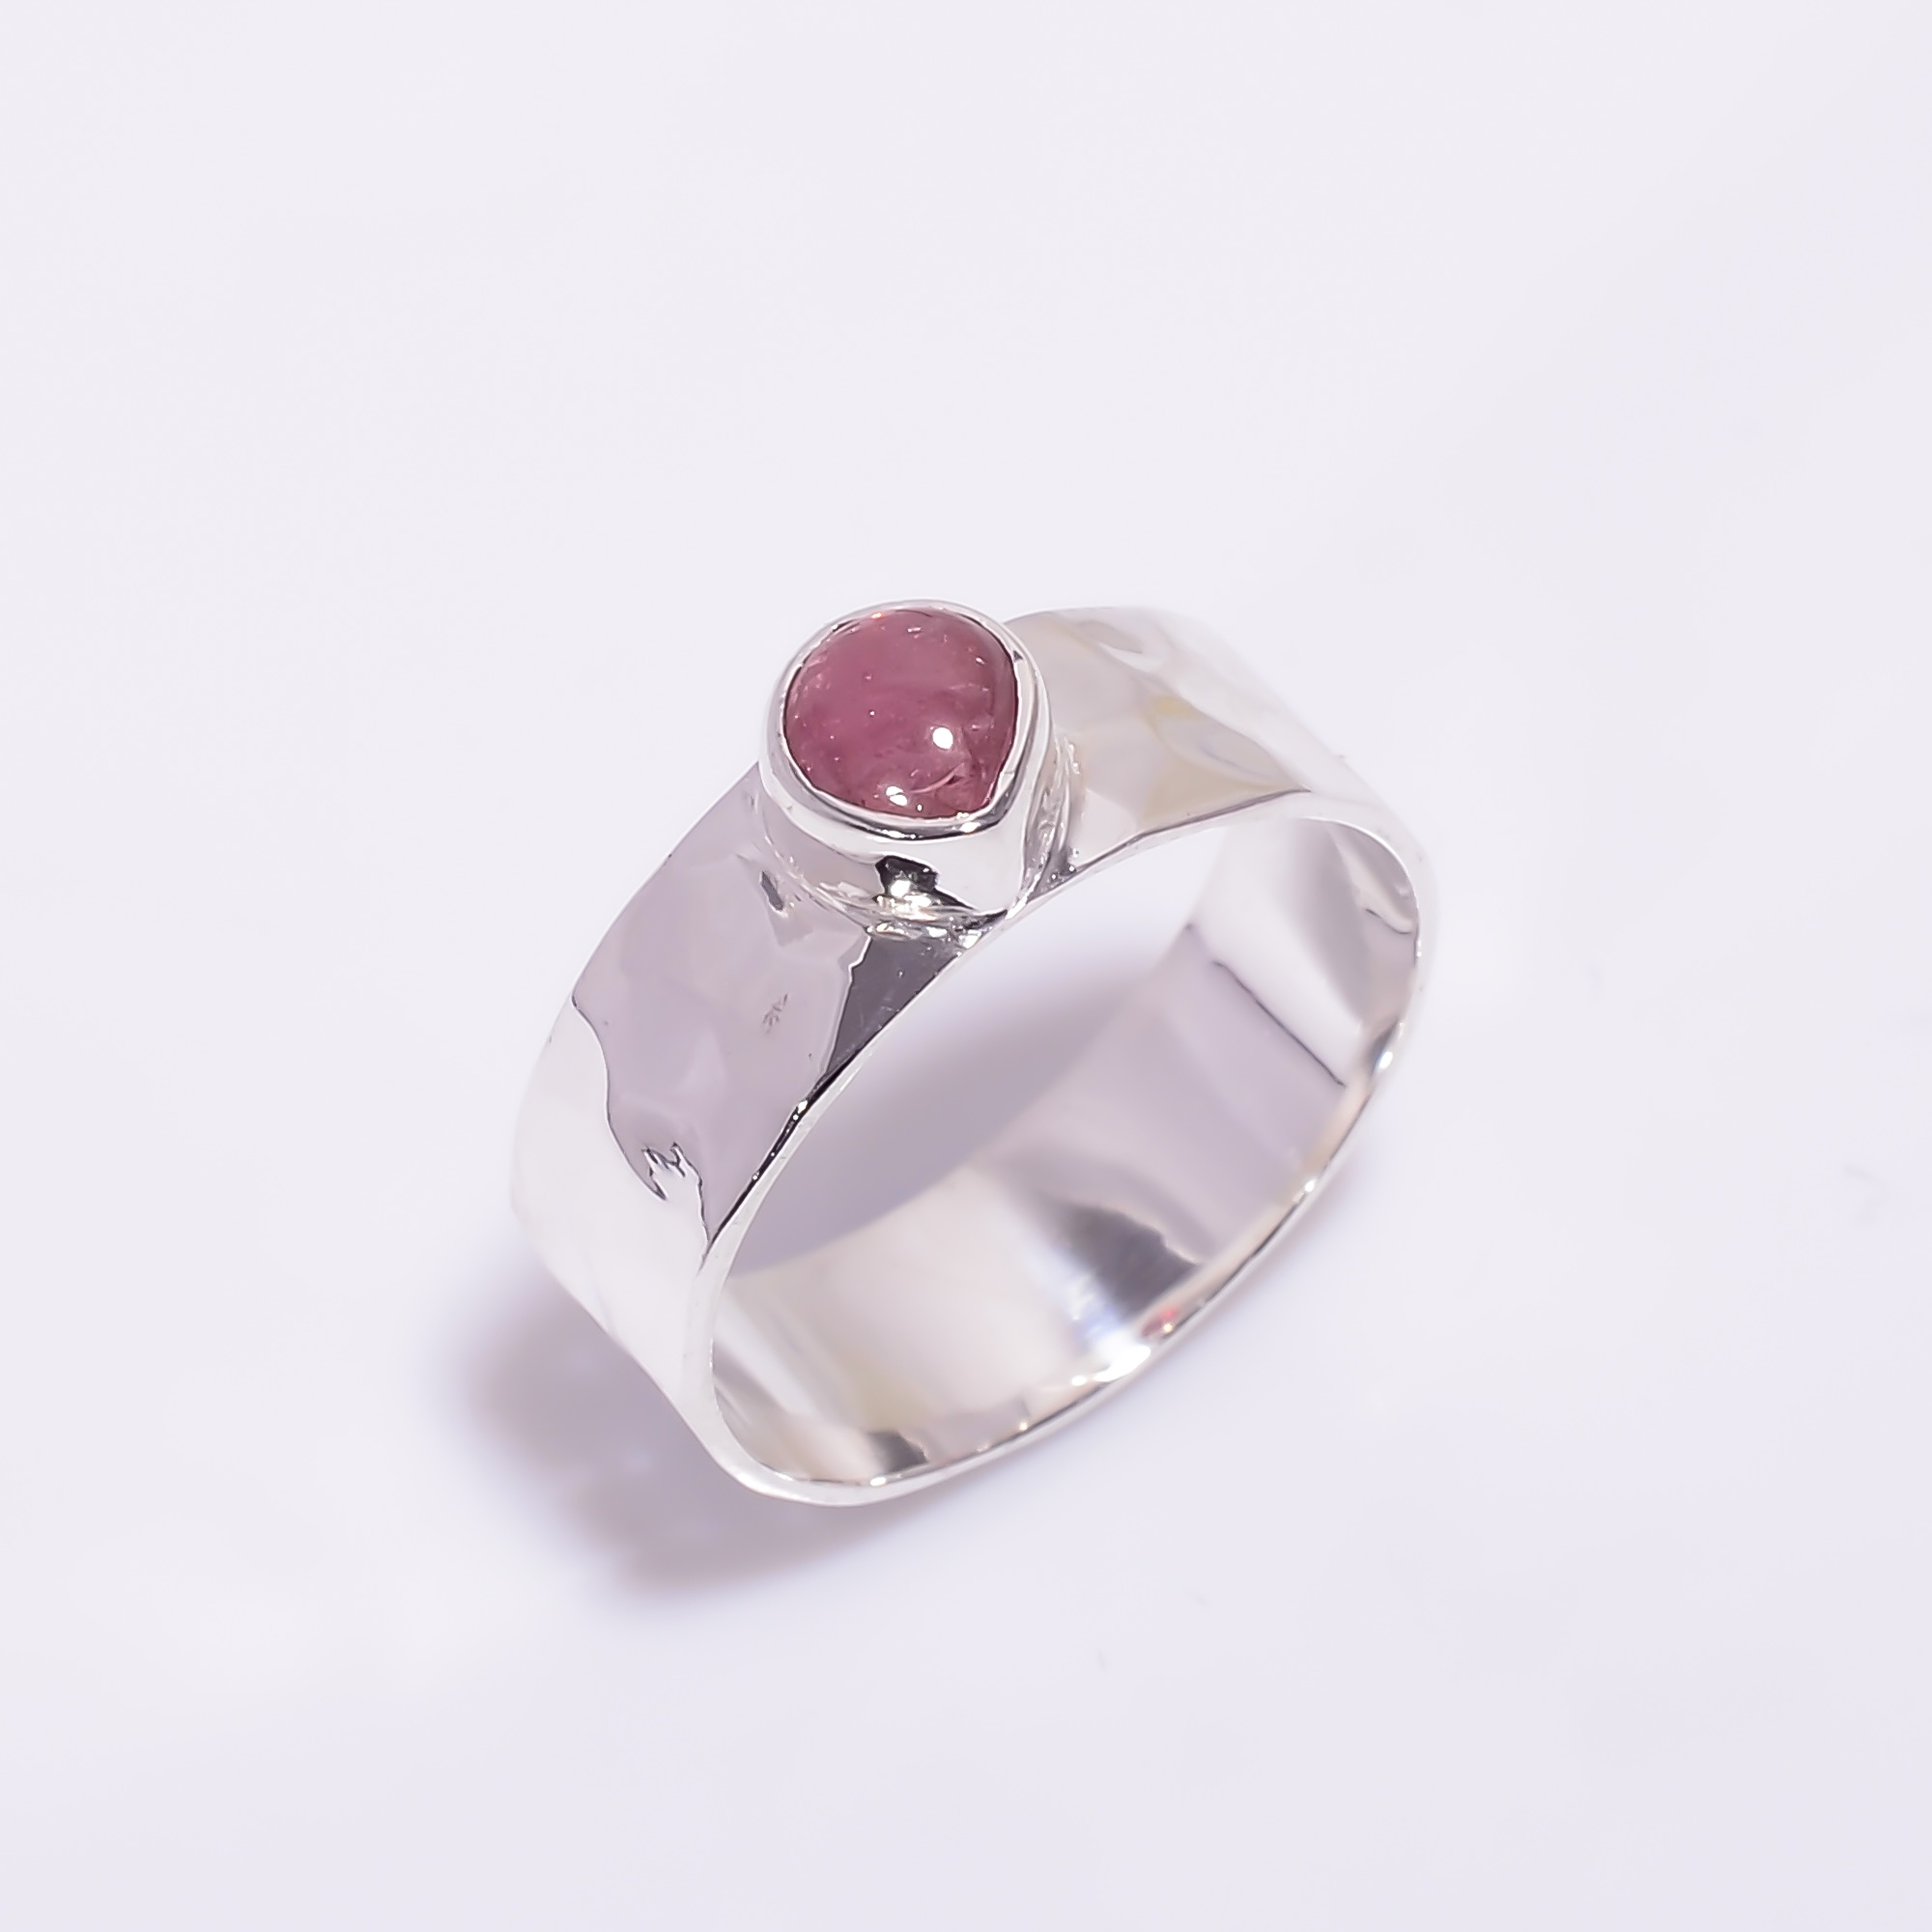 Pink Tourmaline Gemstone 925 Sterling Silver Hammered Ring Size US 6.25